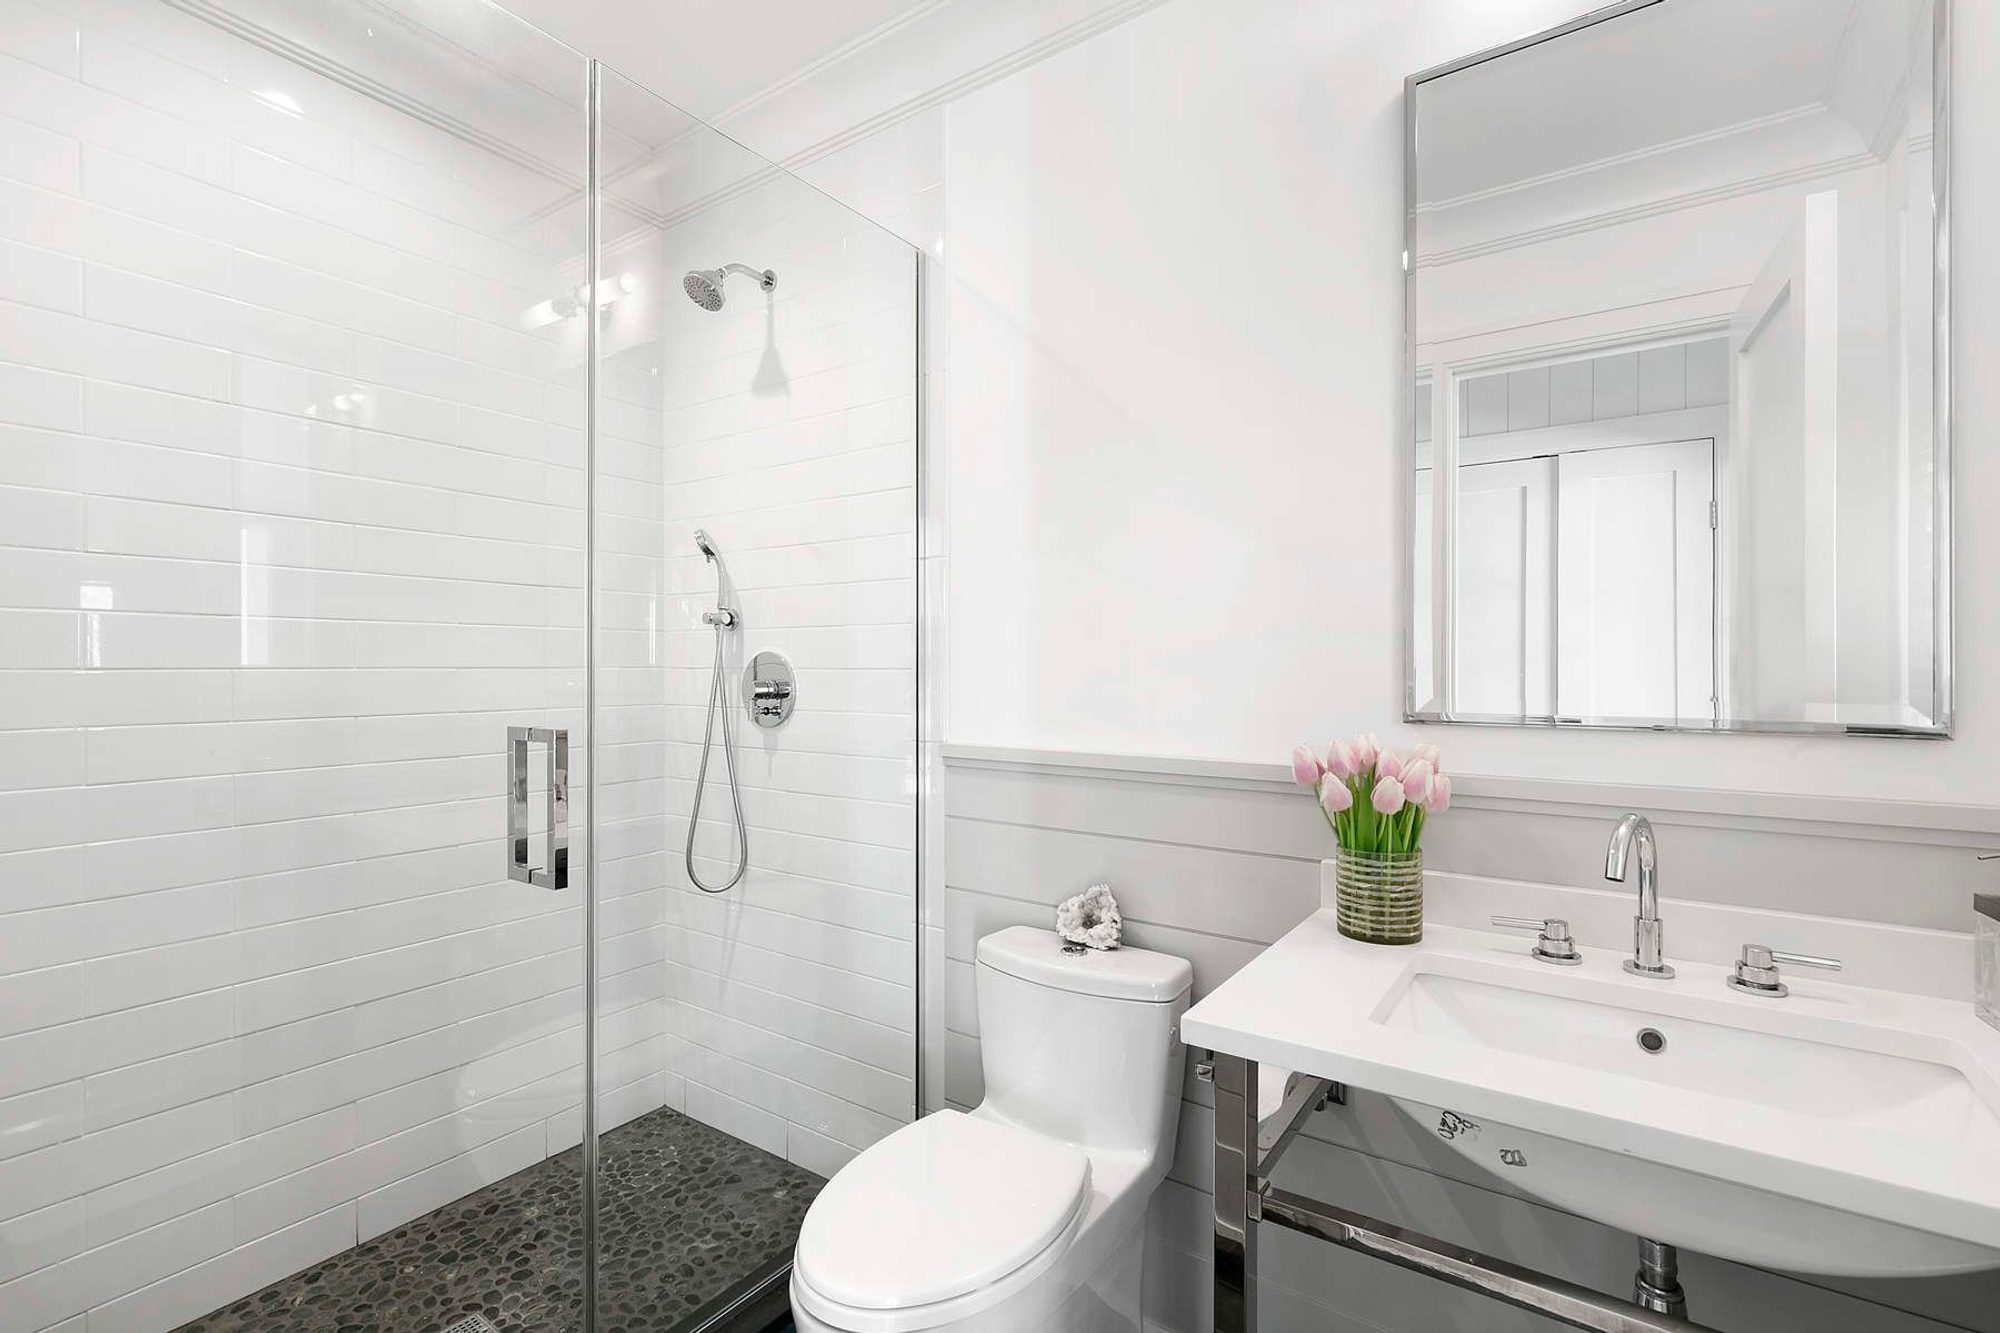 Full bath with horizontal shiplap wainscoting. In a medium sized bathroom horizontal shiplap becomes a viable option. This design matches the shower tile nicely.